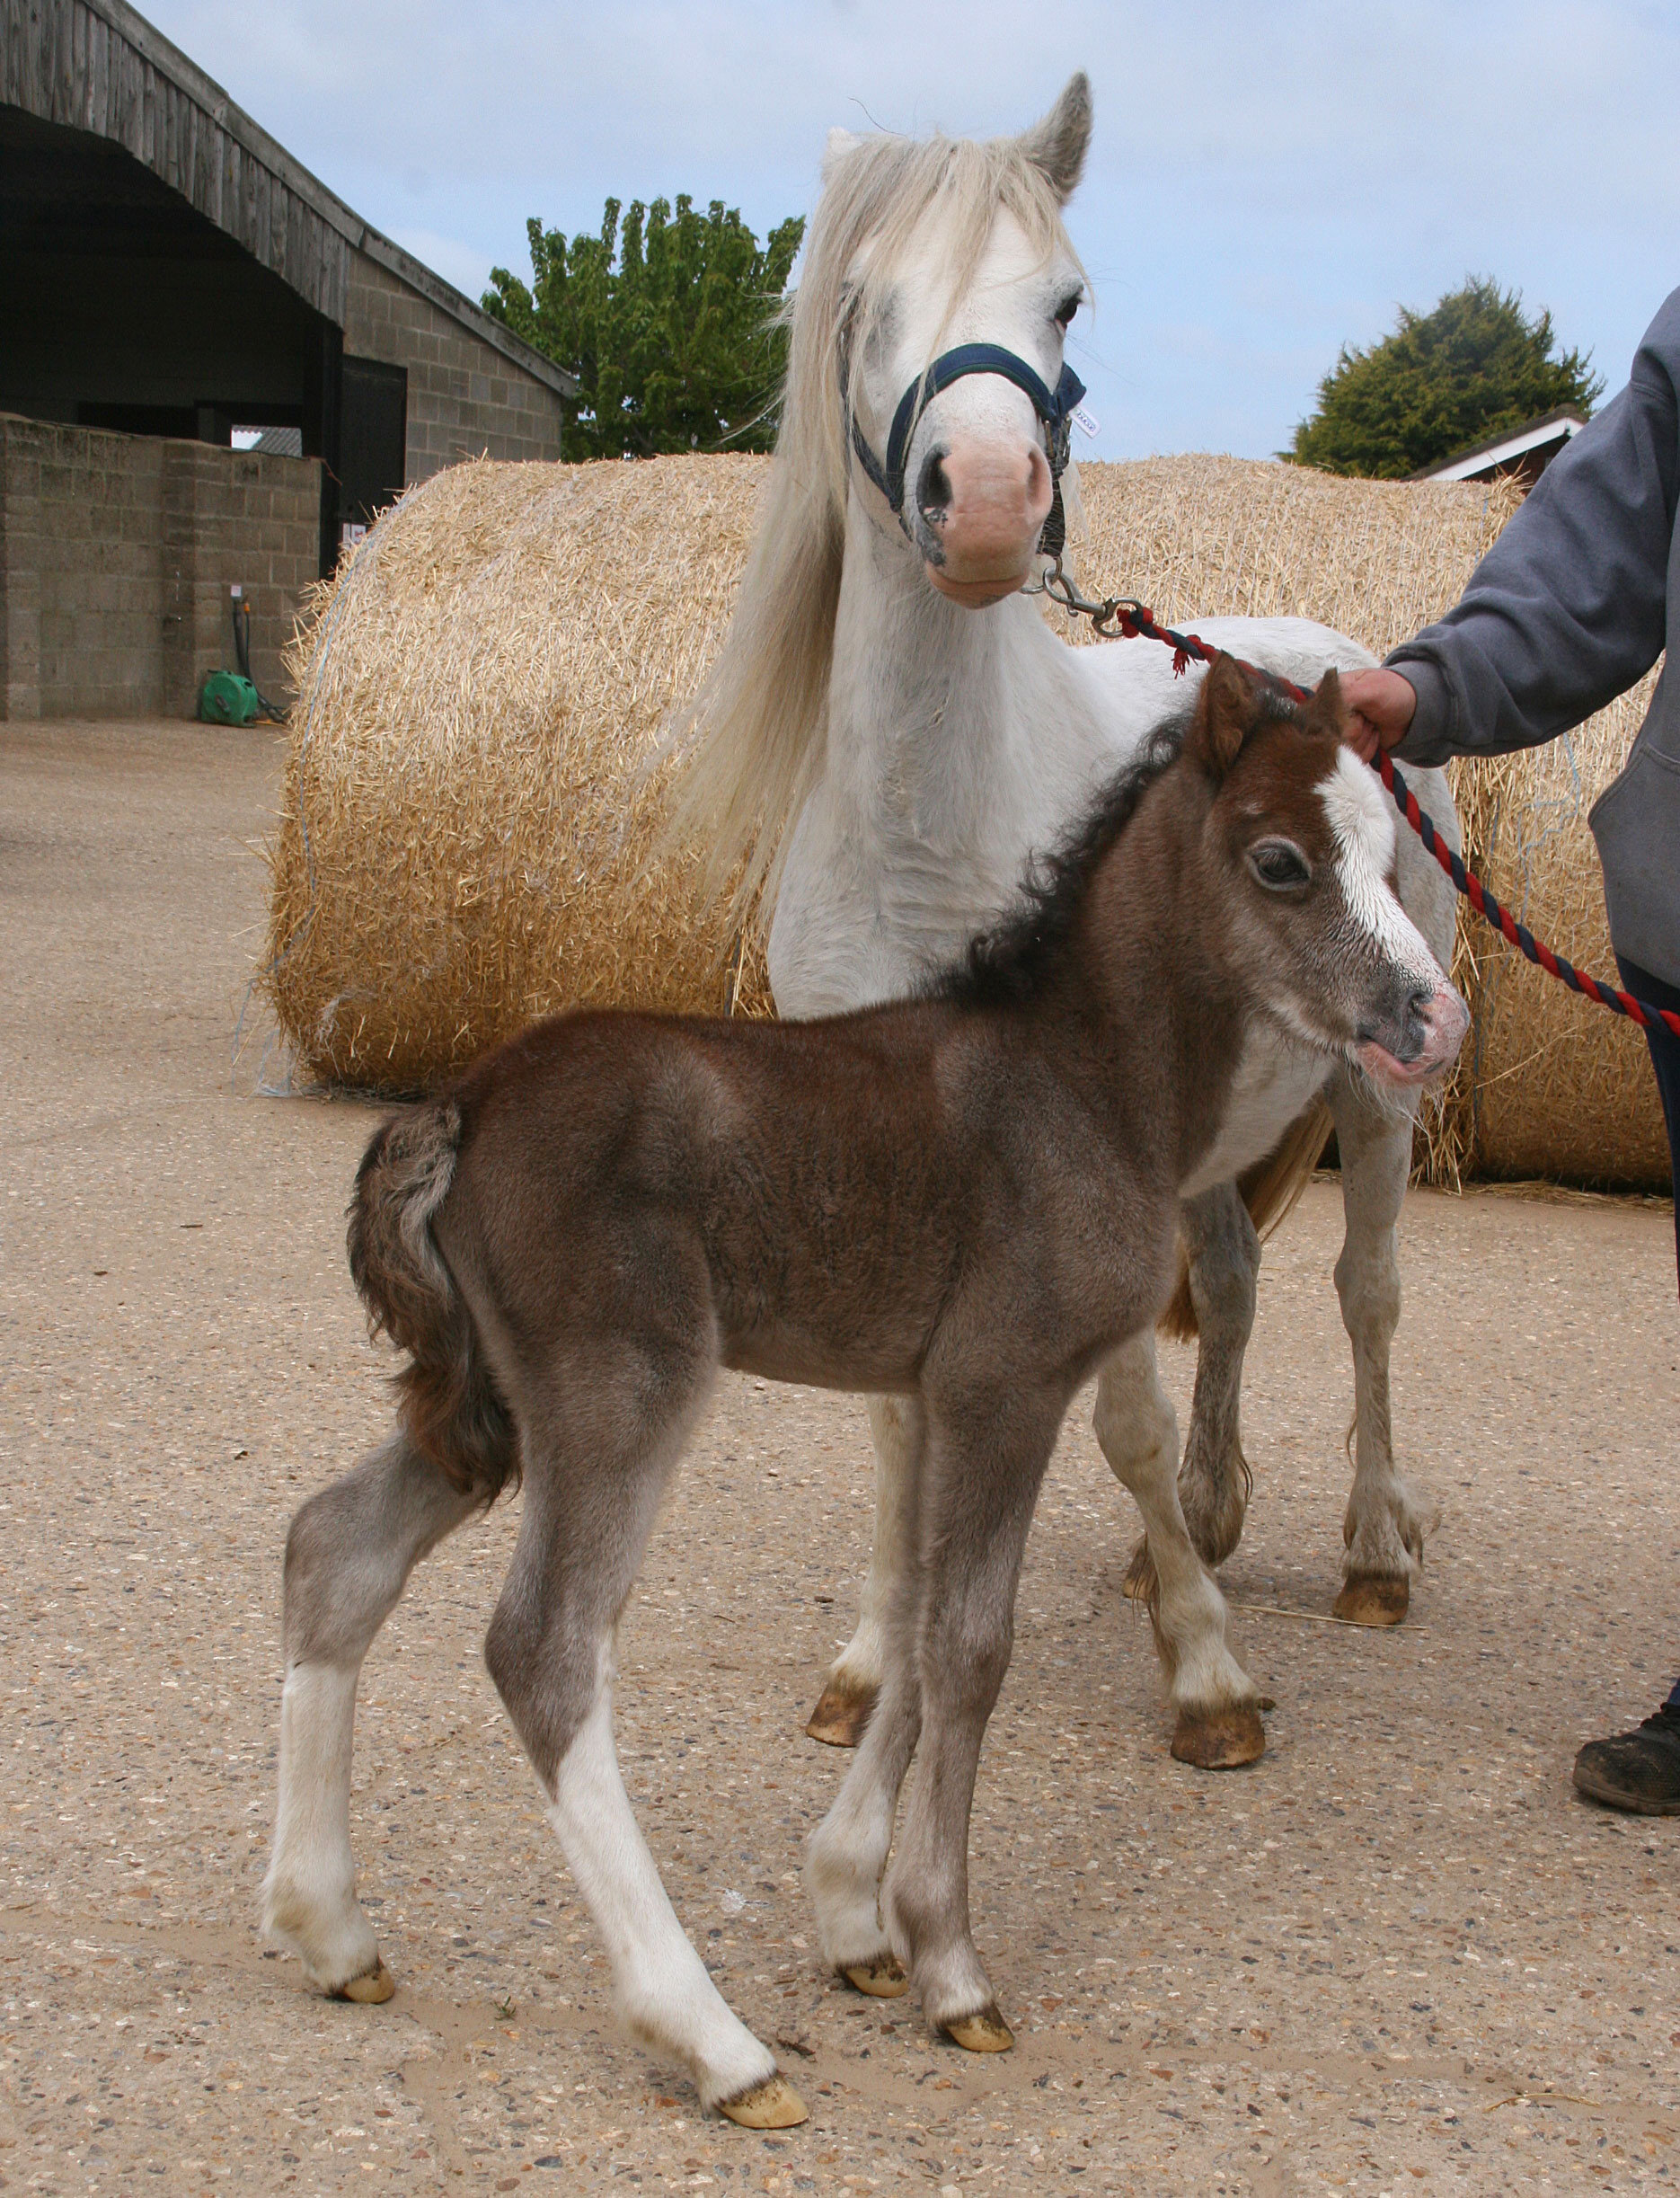 Mum, Dilly, and foal, Dessie, are currently at Cambridge Veterinary Hospital